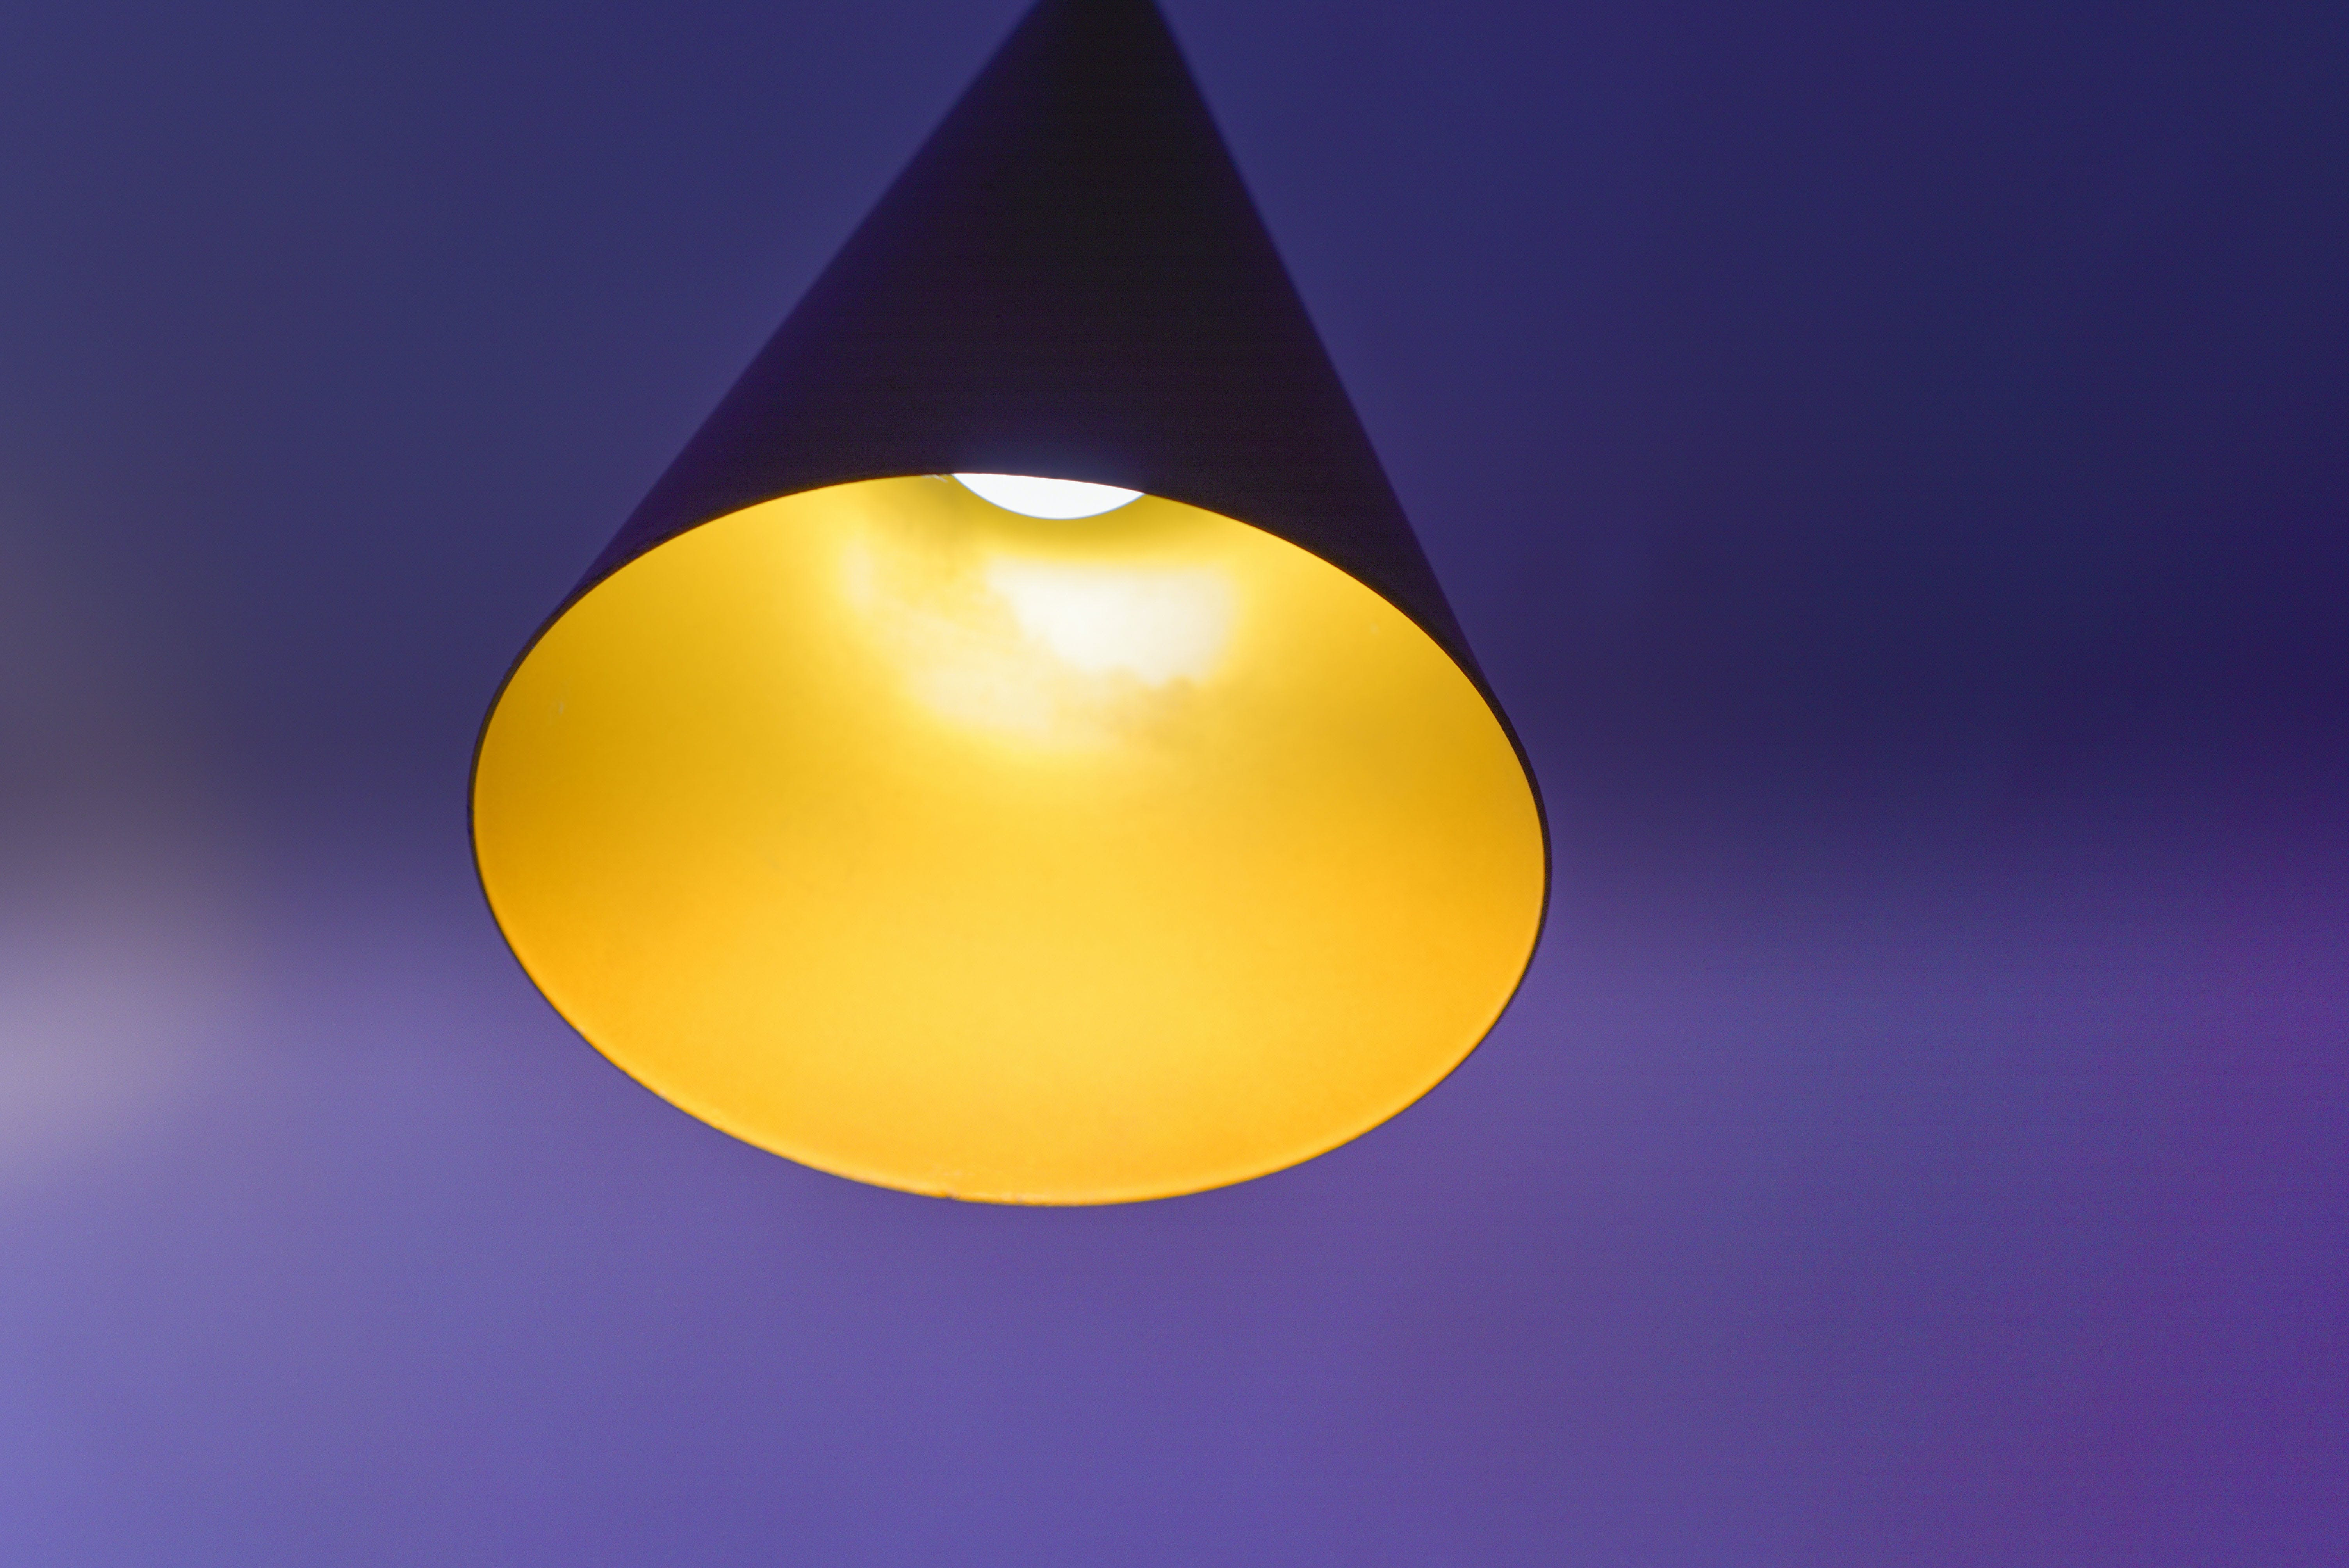 Free stock photo of light, blur, lamp, colorful